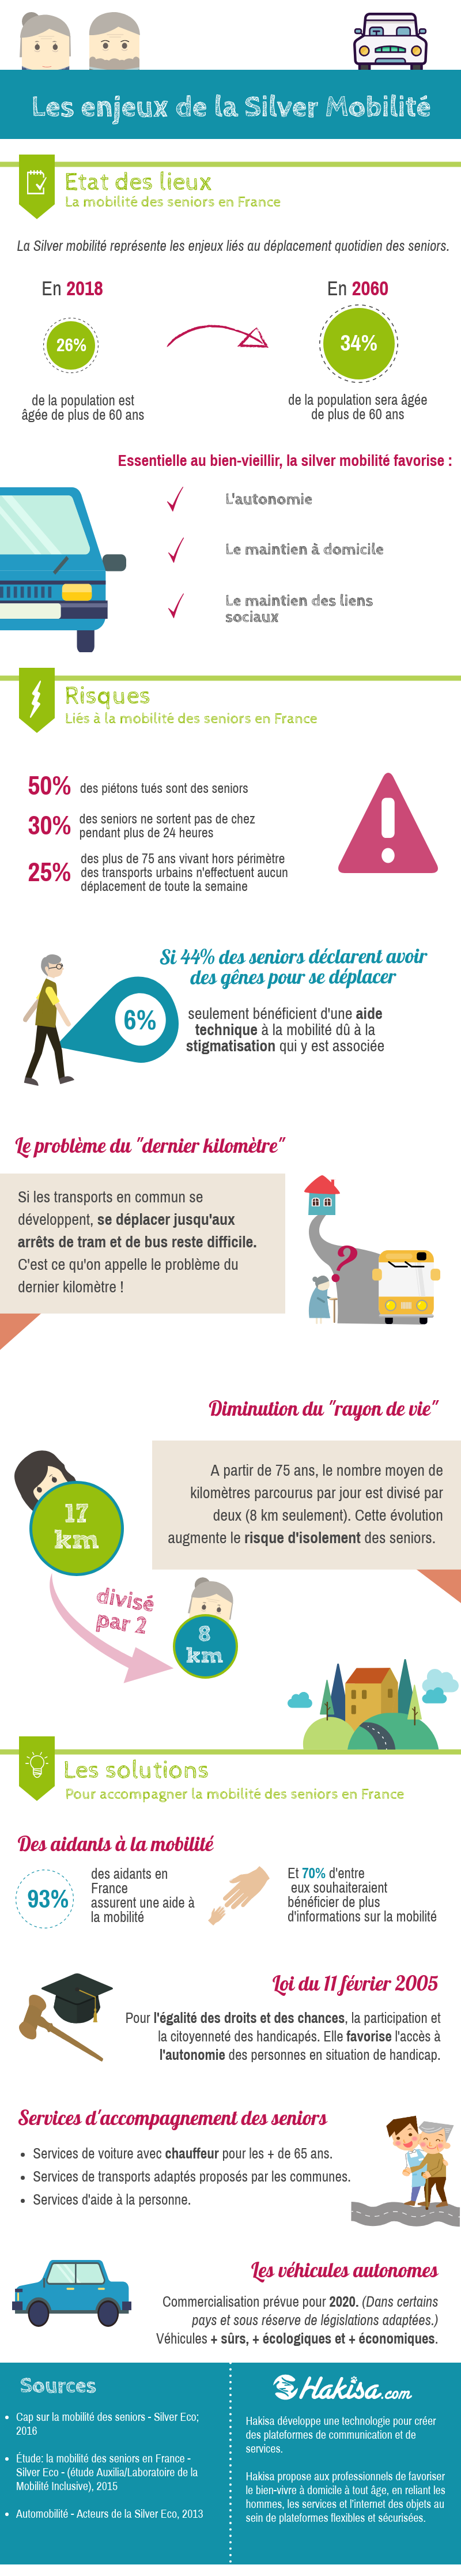 Infographie Silver Mobilite FINALE